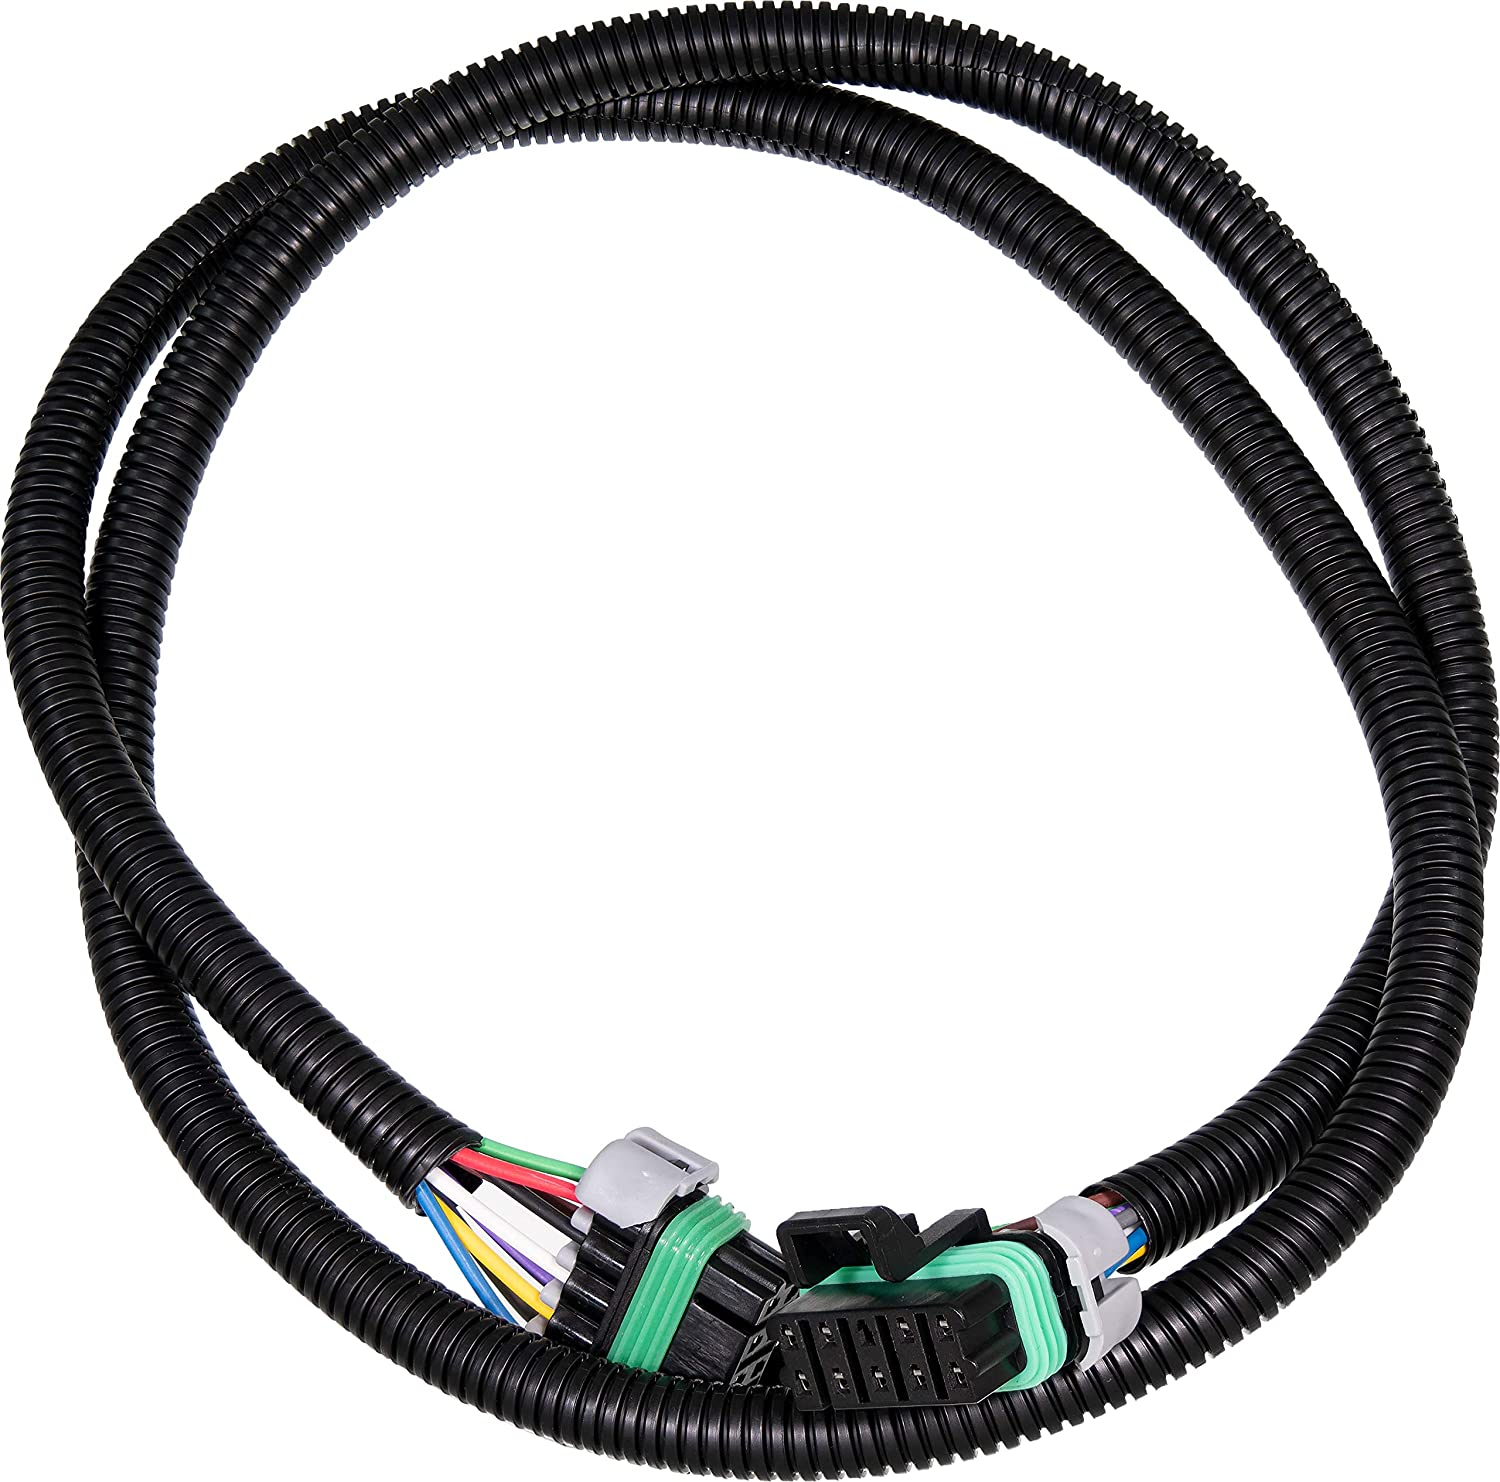 S1147 12125676 APDTY 141673 Gas Pedal Sensor-Throttle Control Module Wire Wiring Harness Cable Replaces PT588